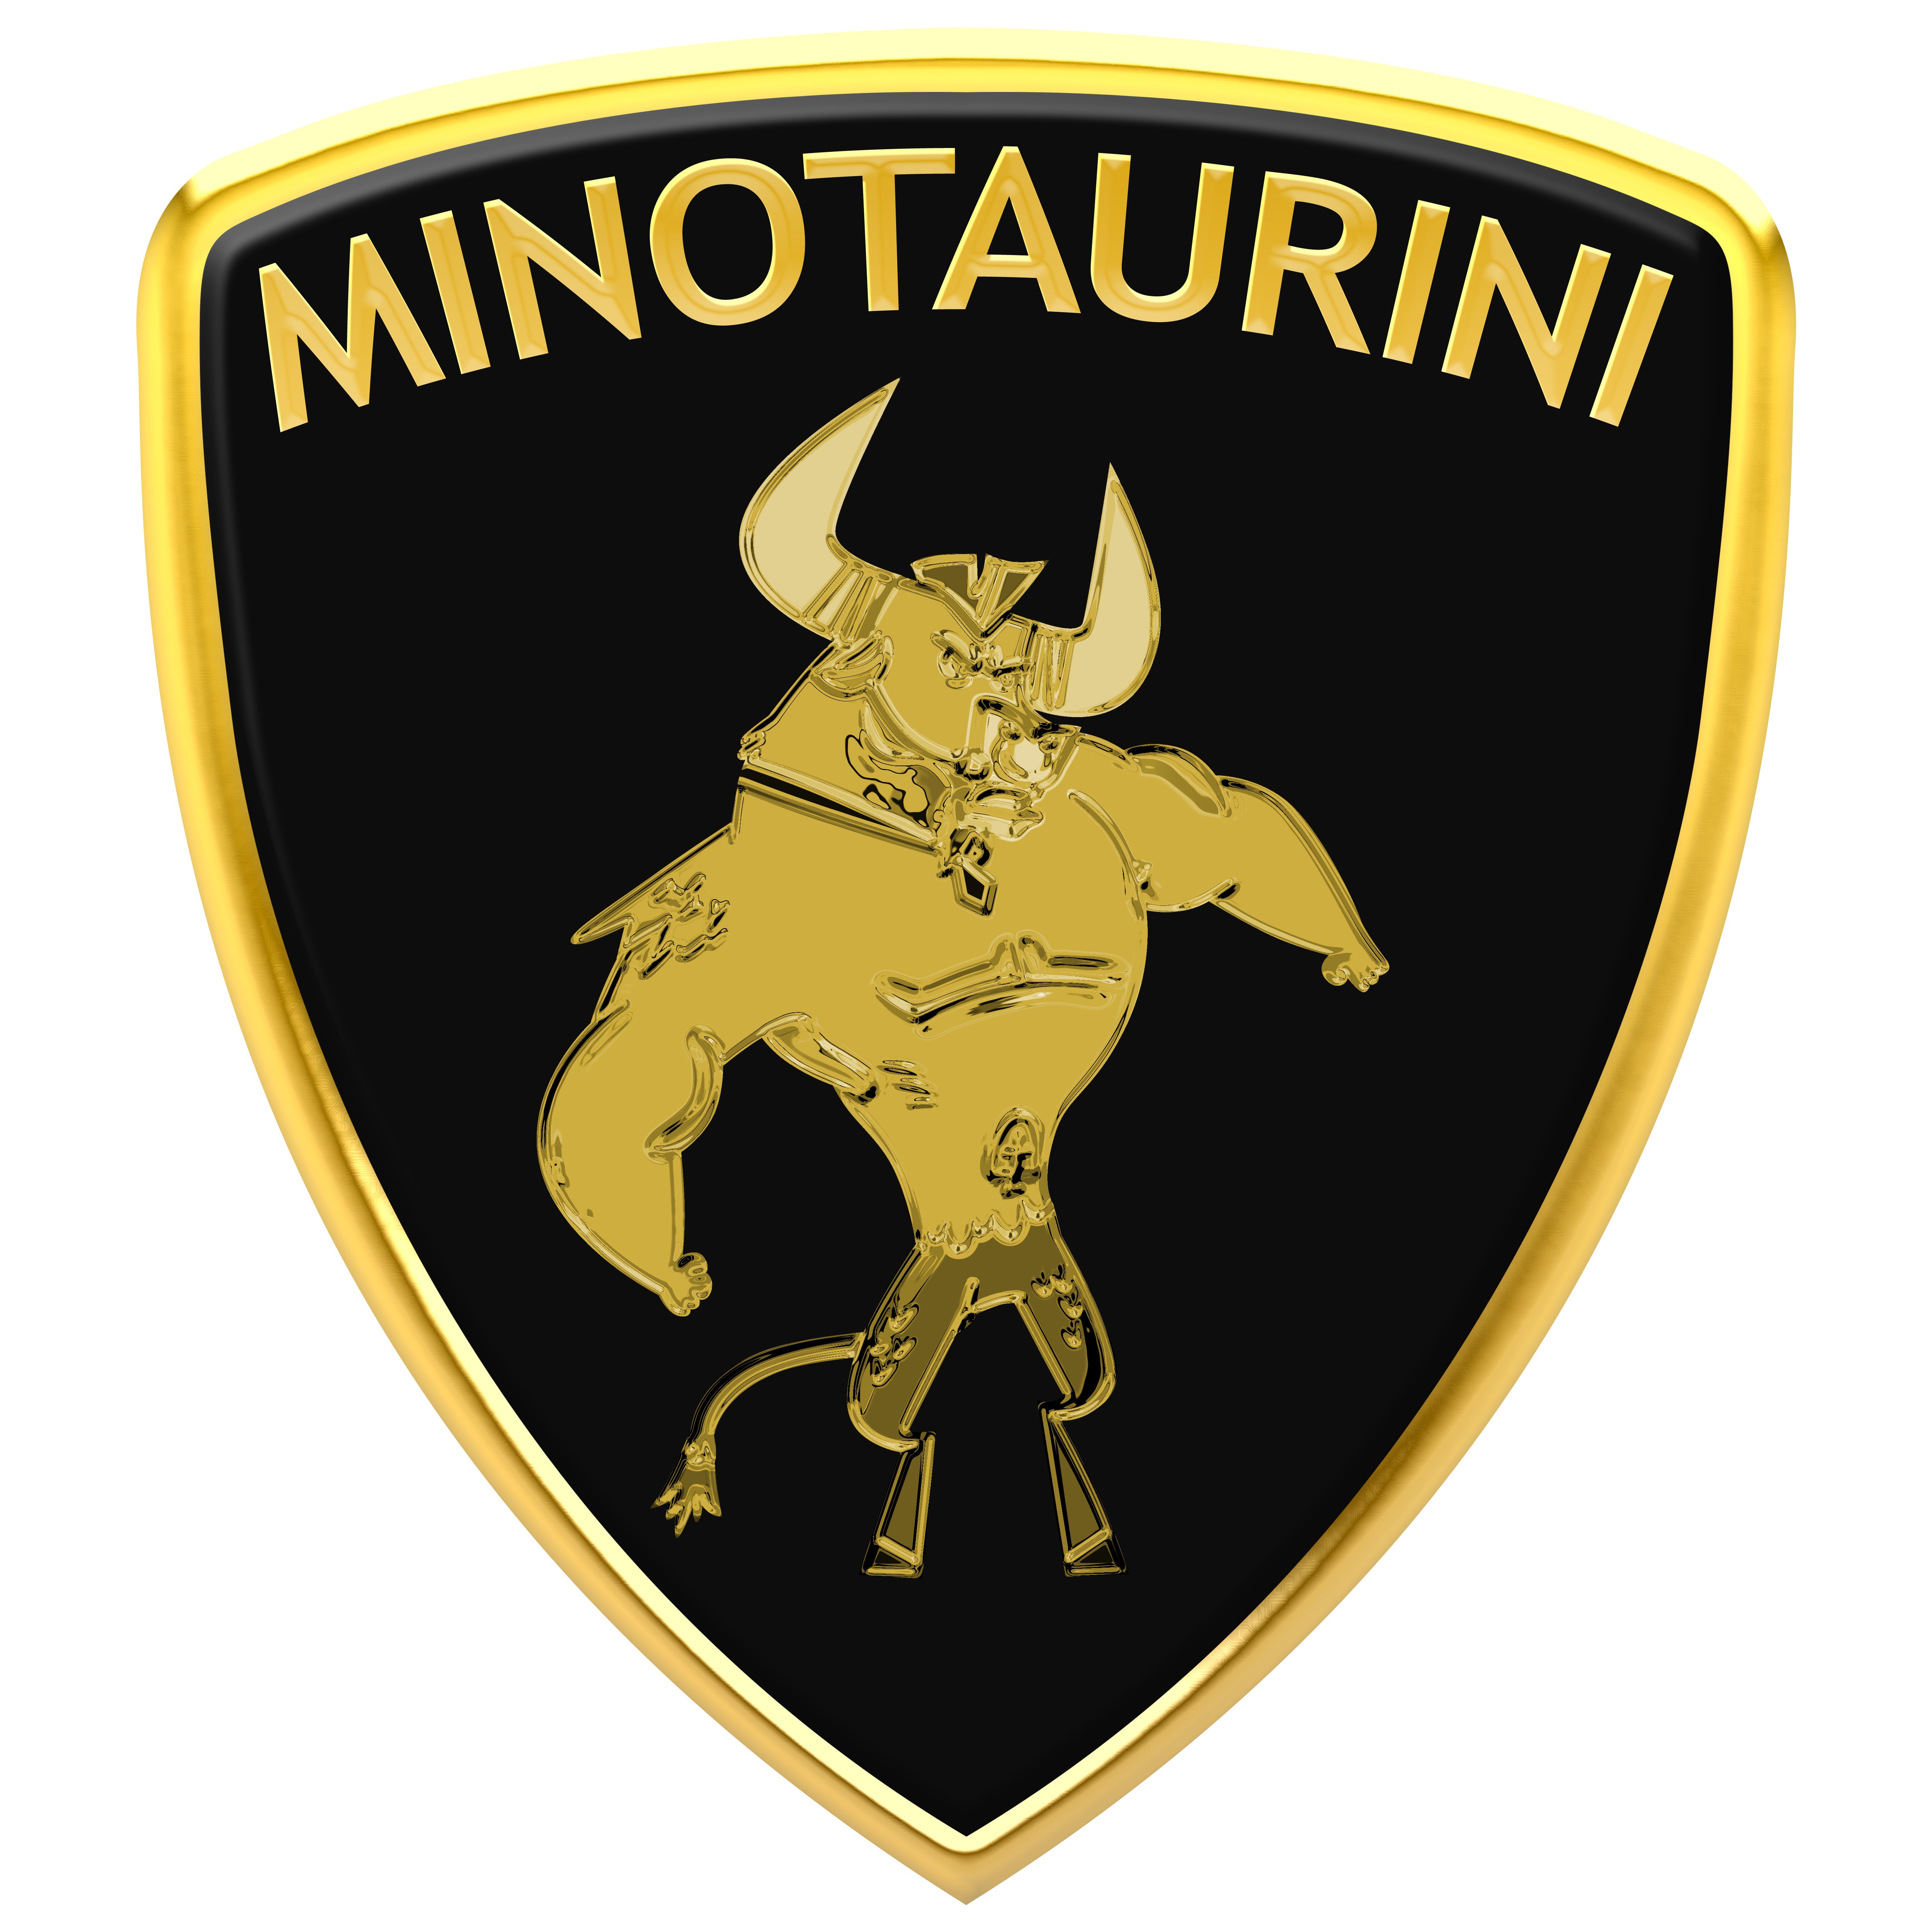 Minotaurini Logo By Skeptic Mousey On Deviantart